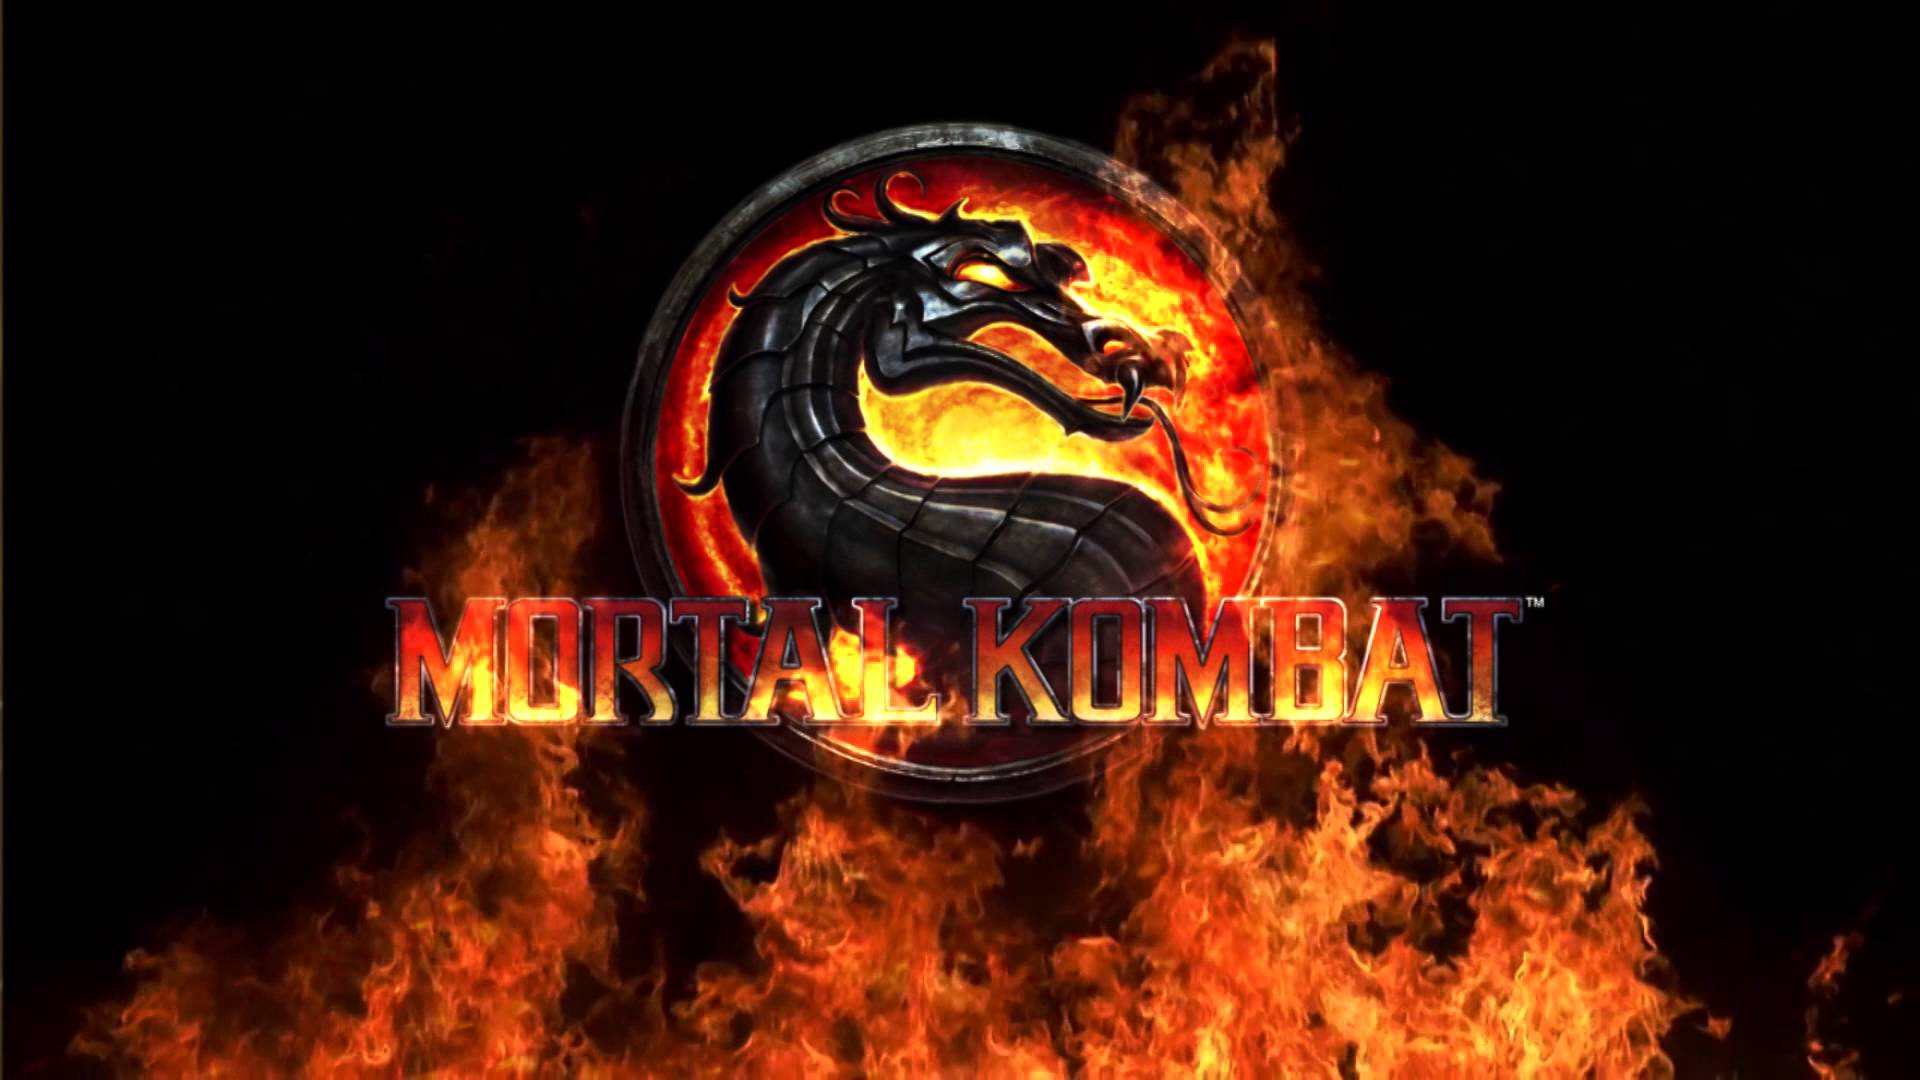 Steam Workshop Mortal Kombat Ninja Pack Umk3 And Some Mkii